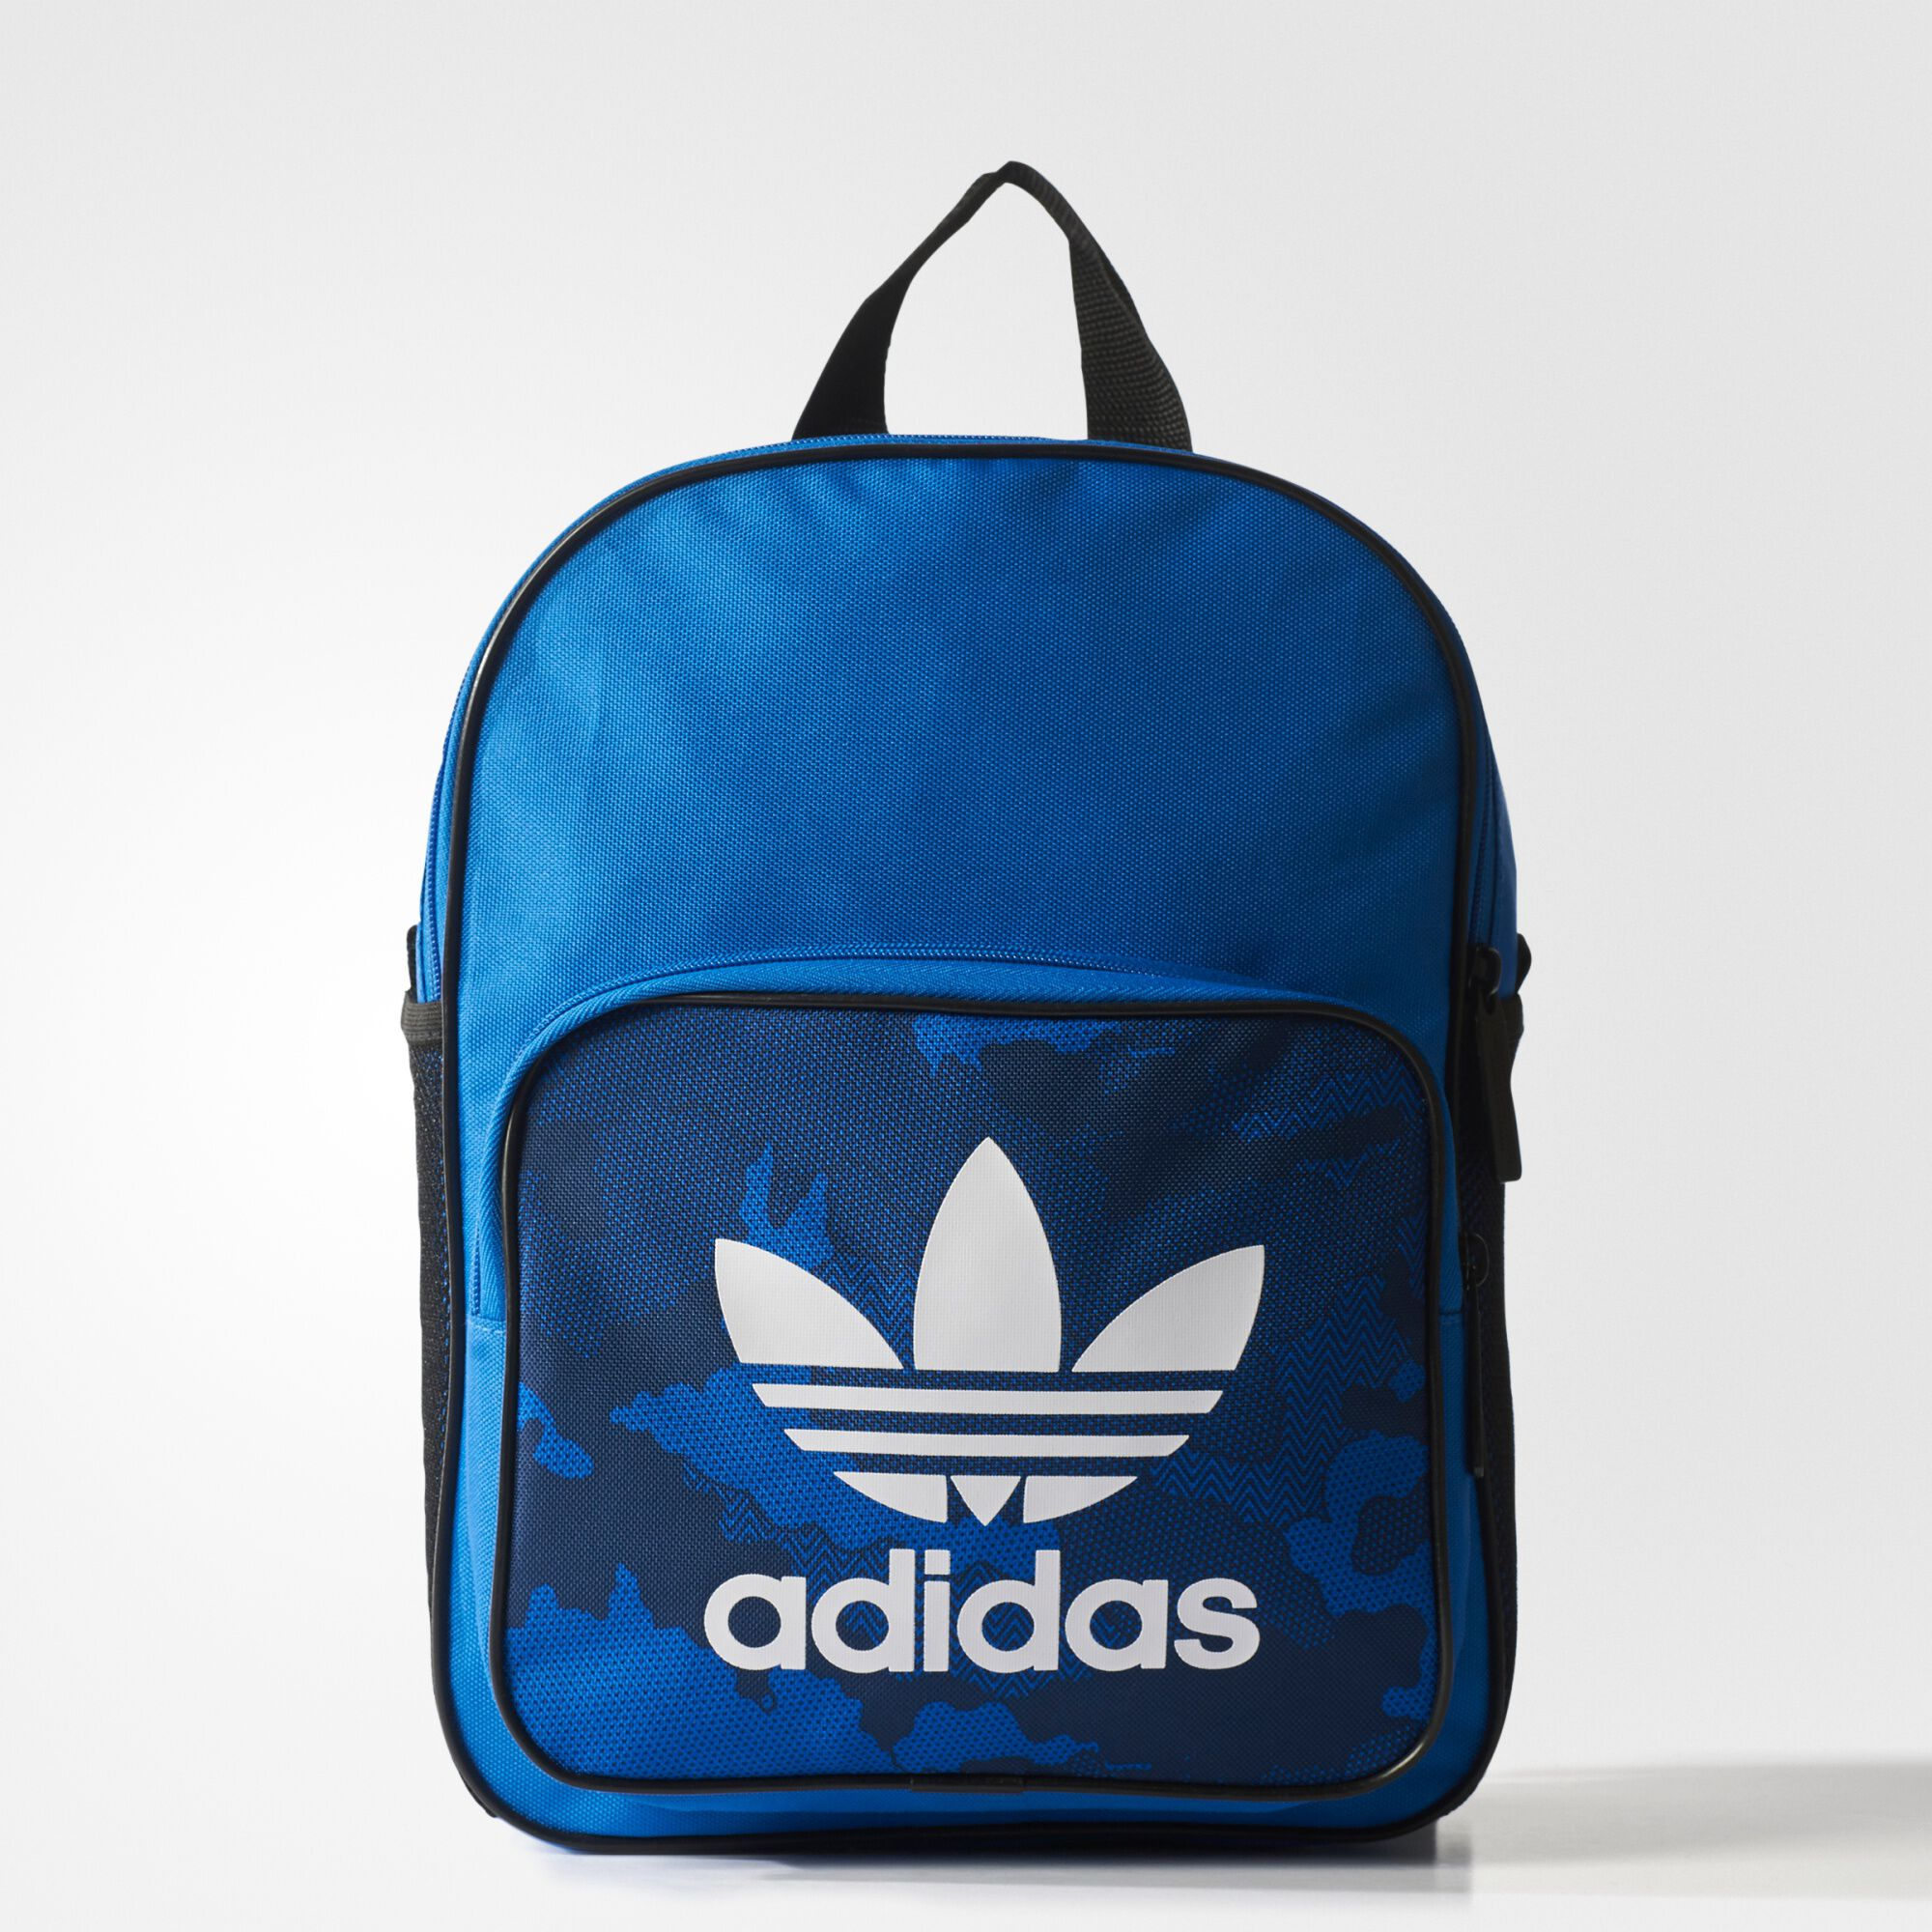 Buy adidas youth backpack   OFF33% Discounted b832b432ceea4